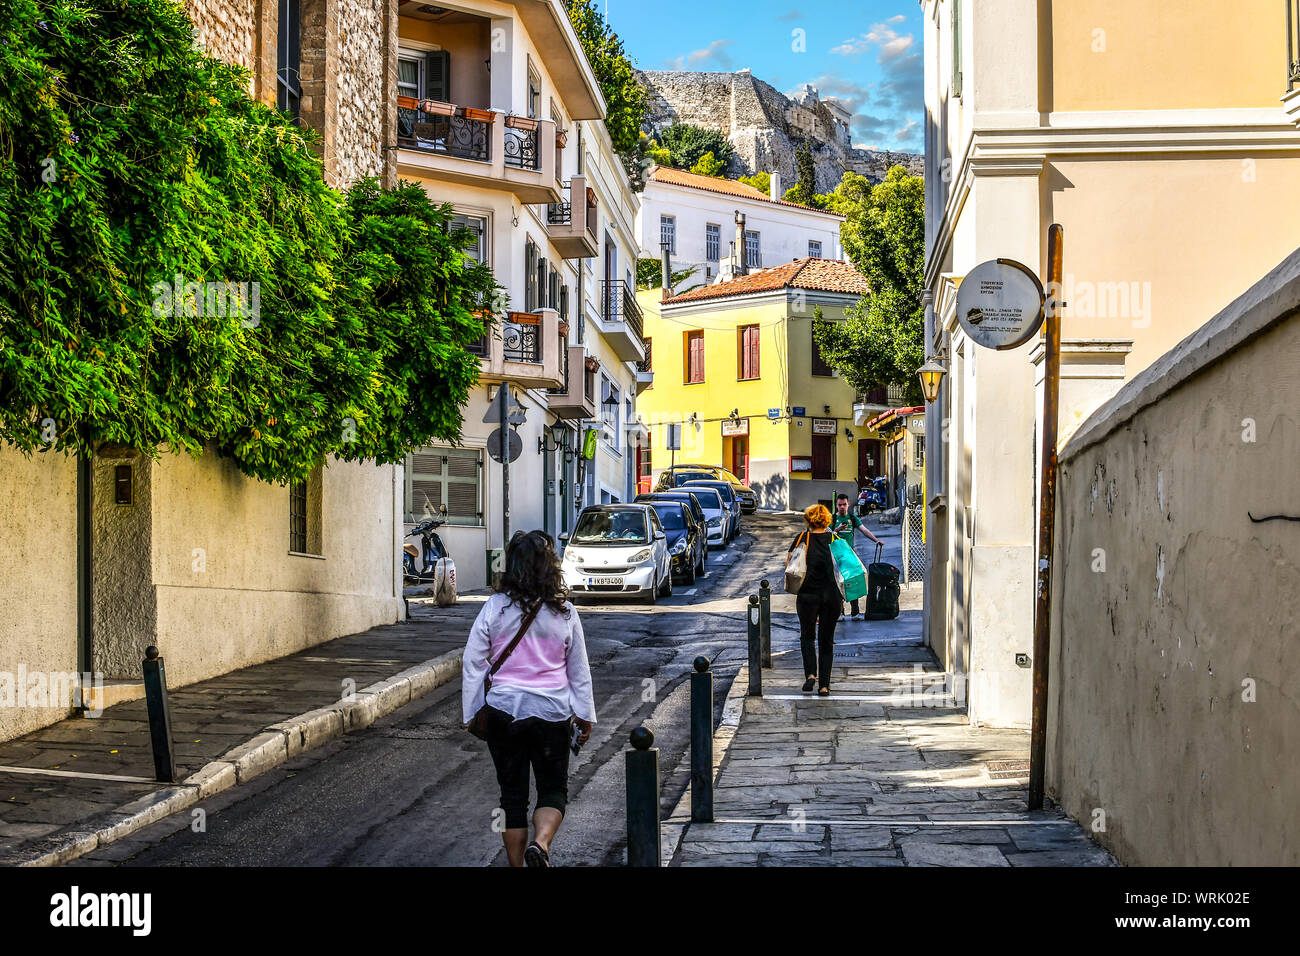 Local Greeks walk through a residential neighborhood near the Plaka District under the Parthenon and Acropolis Hill in Athens, Greece. Stock Photo